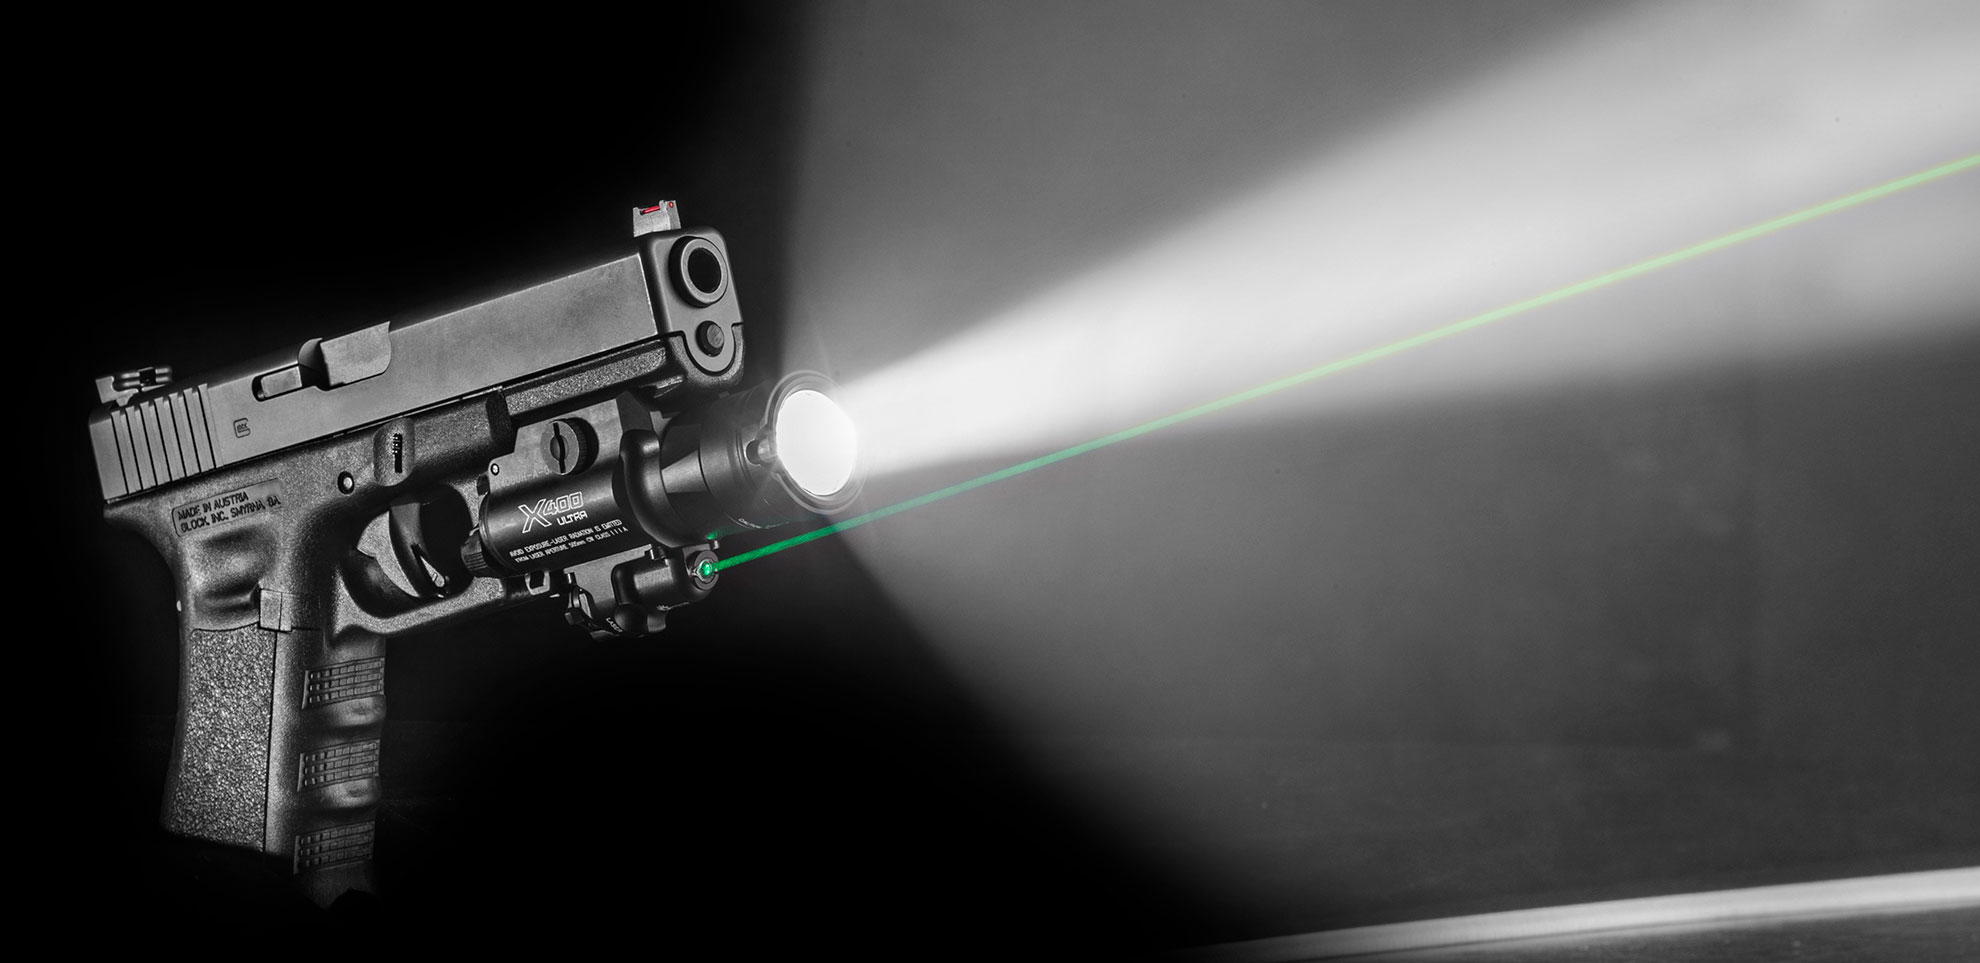 How To Zero A Laser On A GunZero your SureFire laser for fast, accurate target acquisition